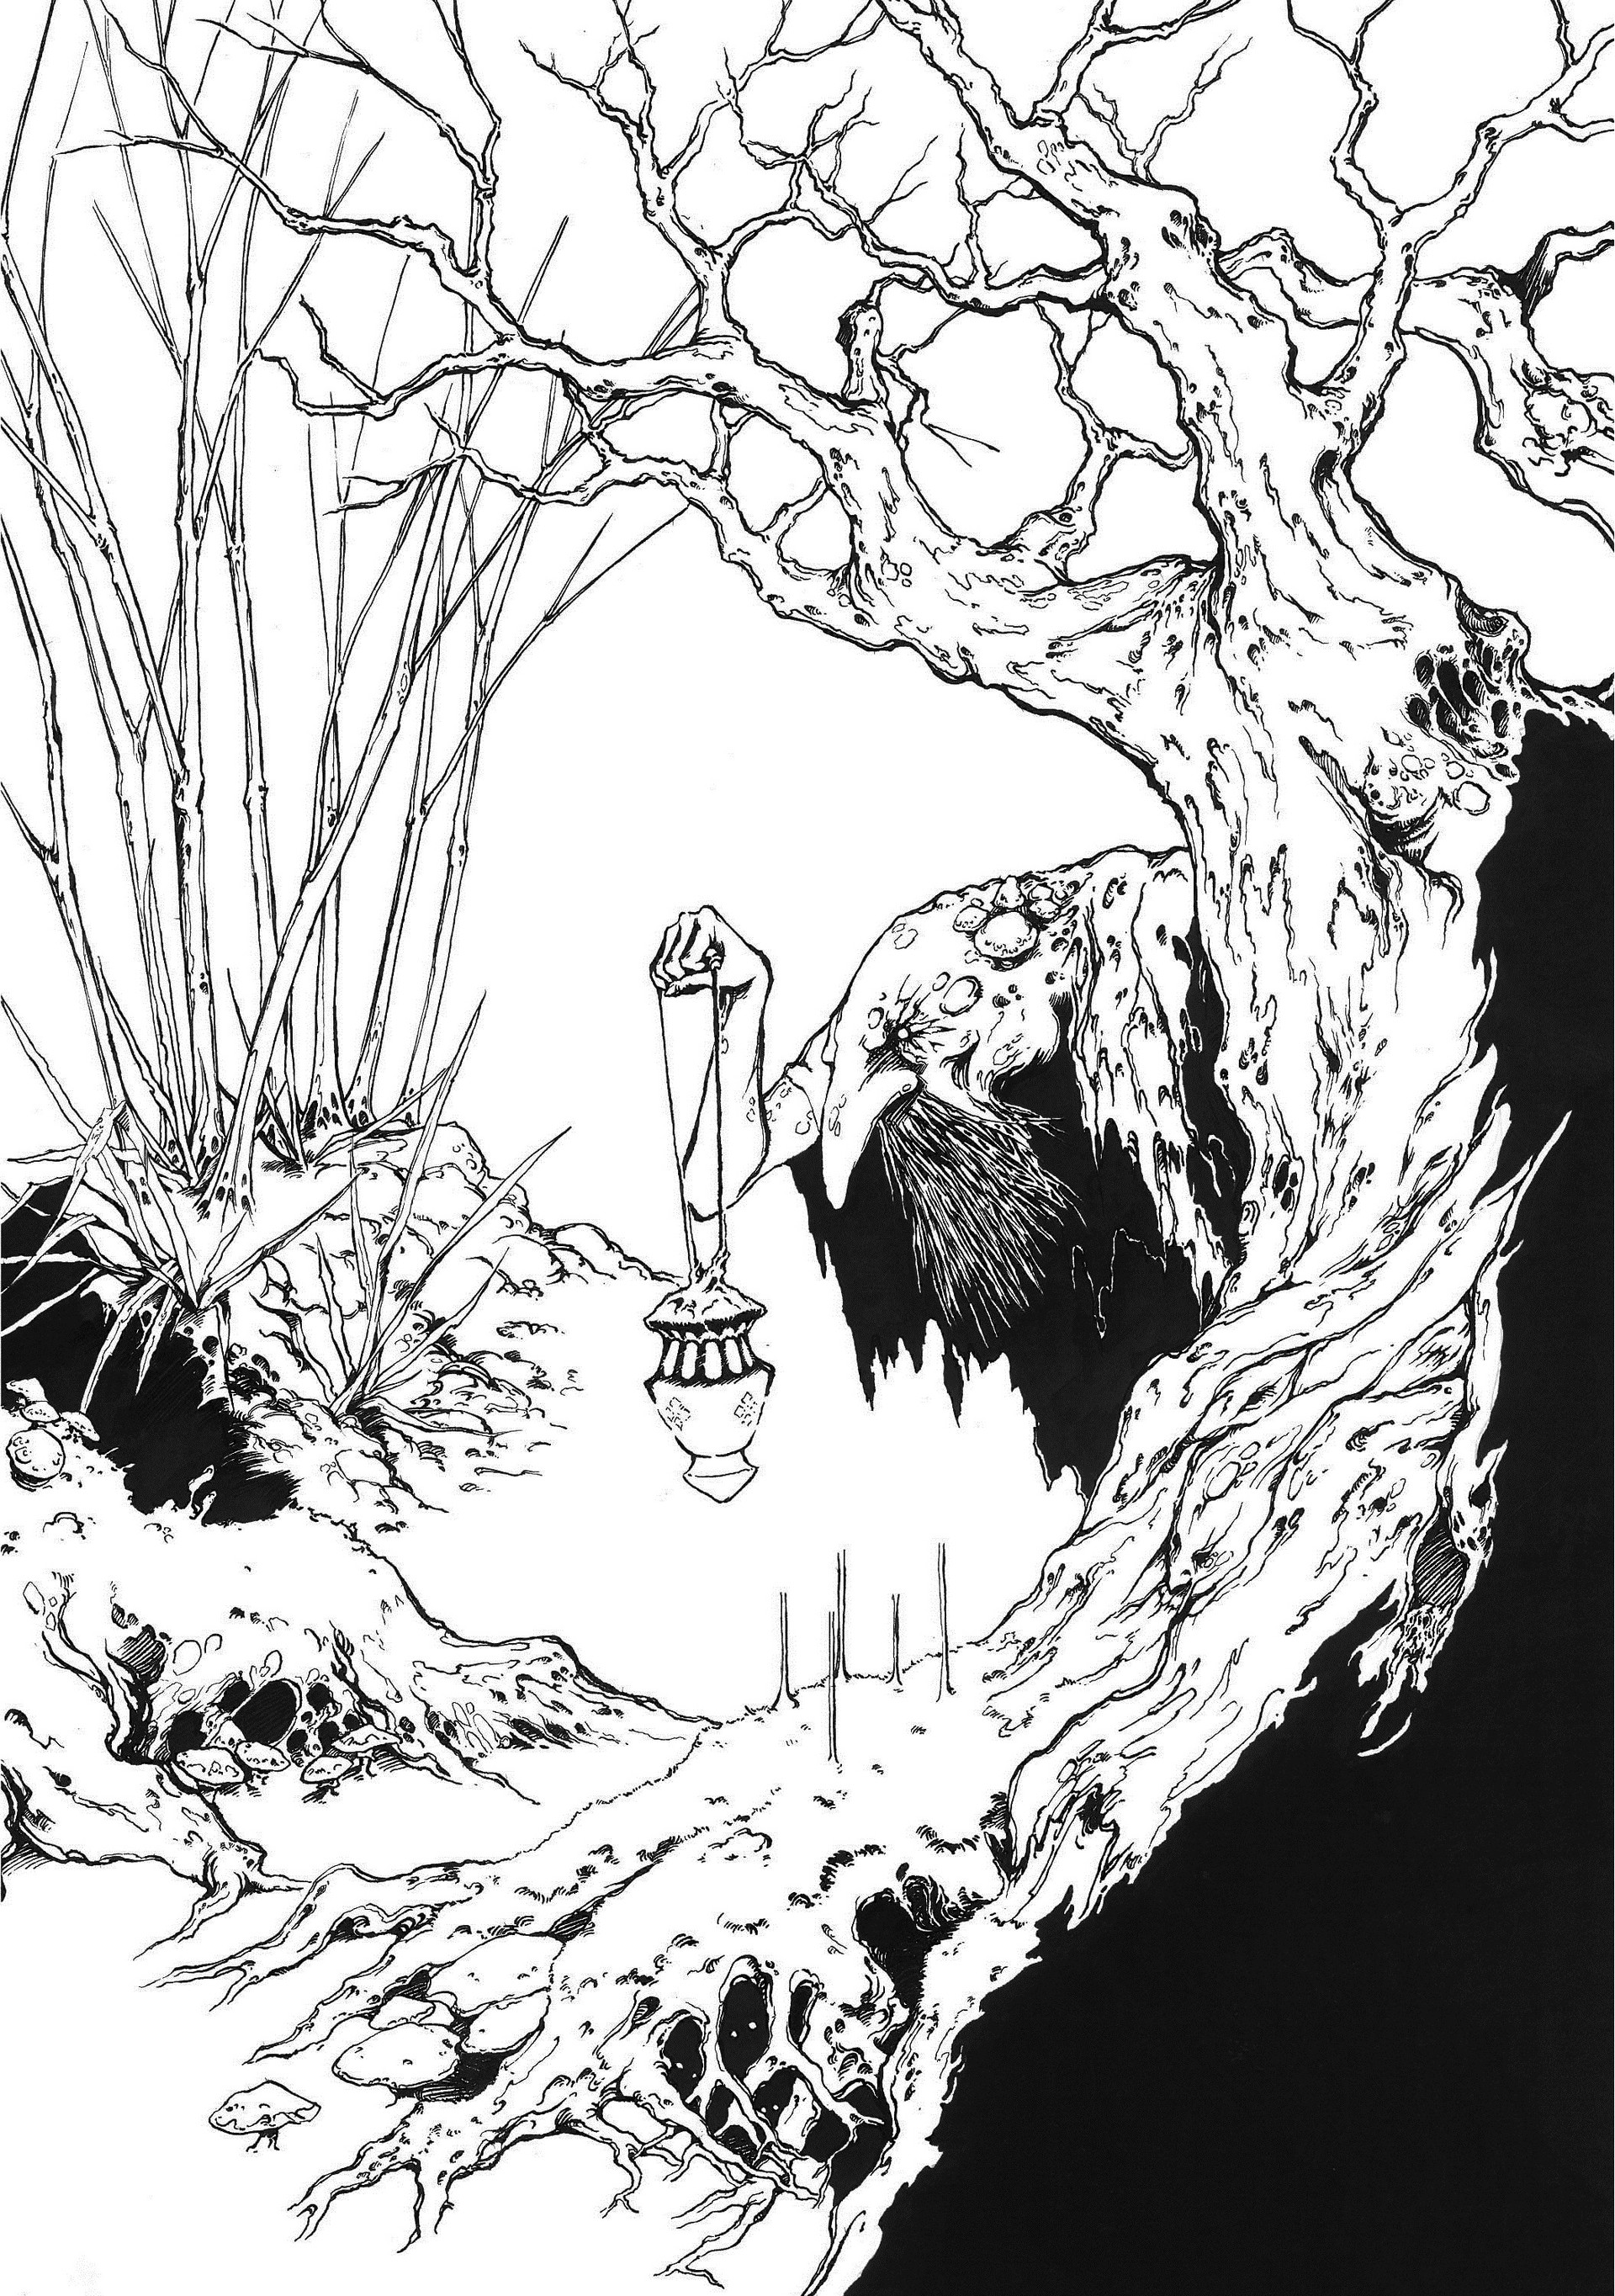 Lee Dabeen. Old Man in the Forest. 2018. Pen on paper, 393 x 272 mm.